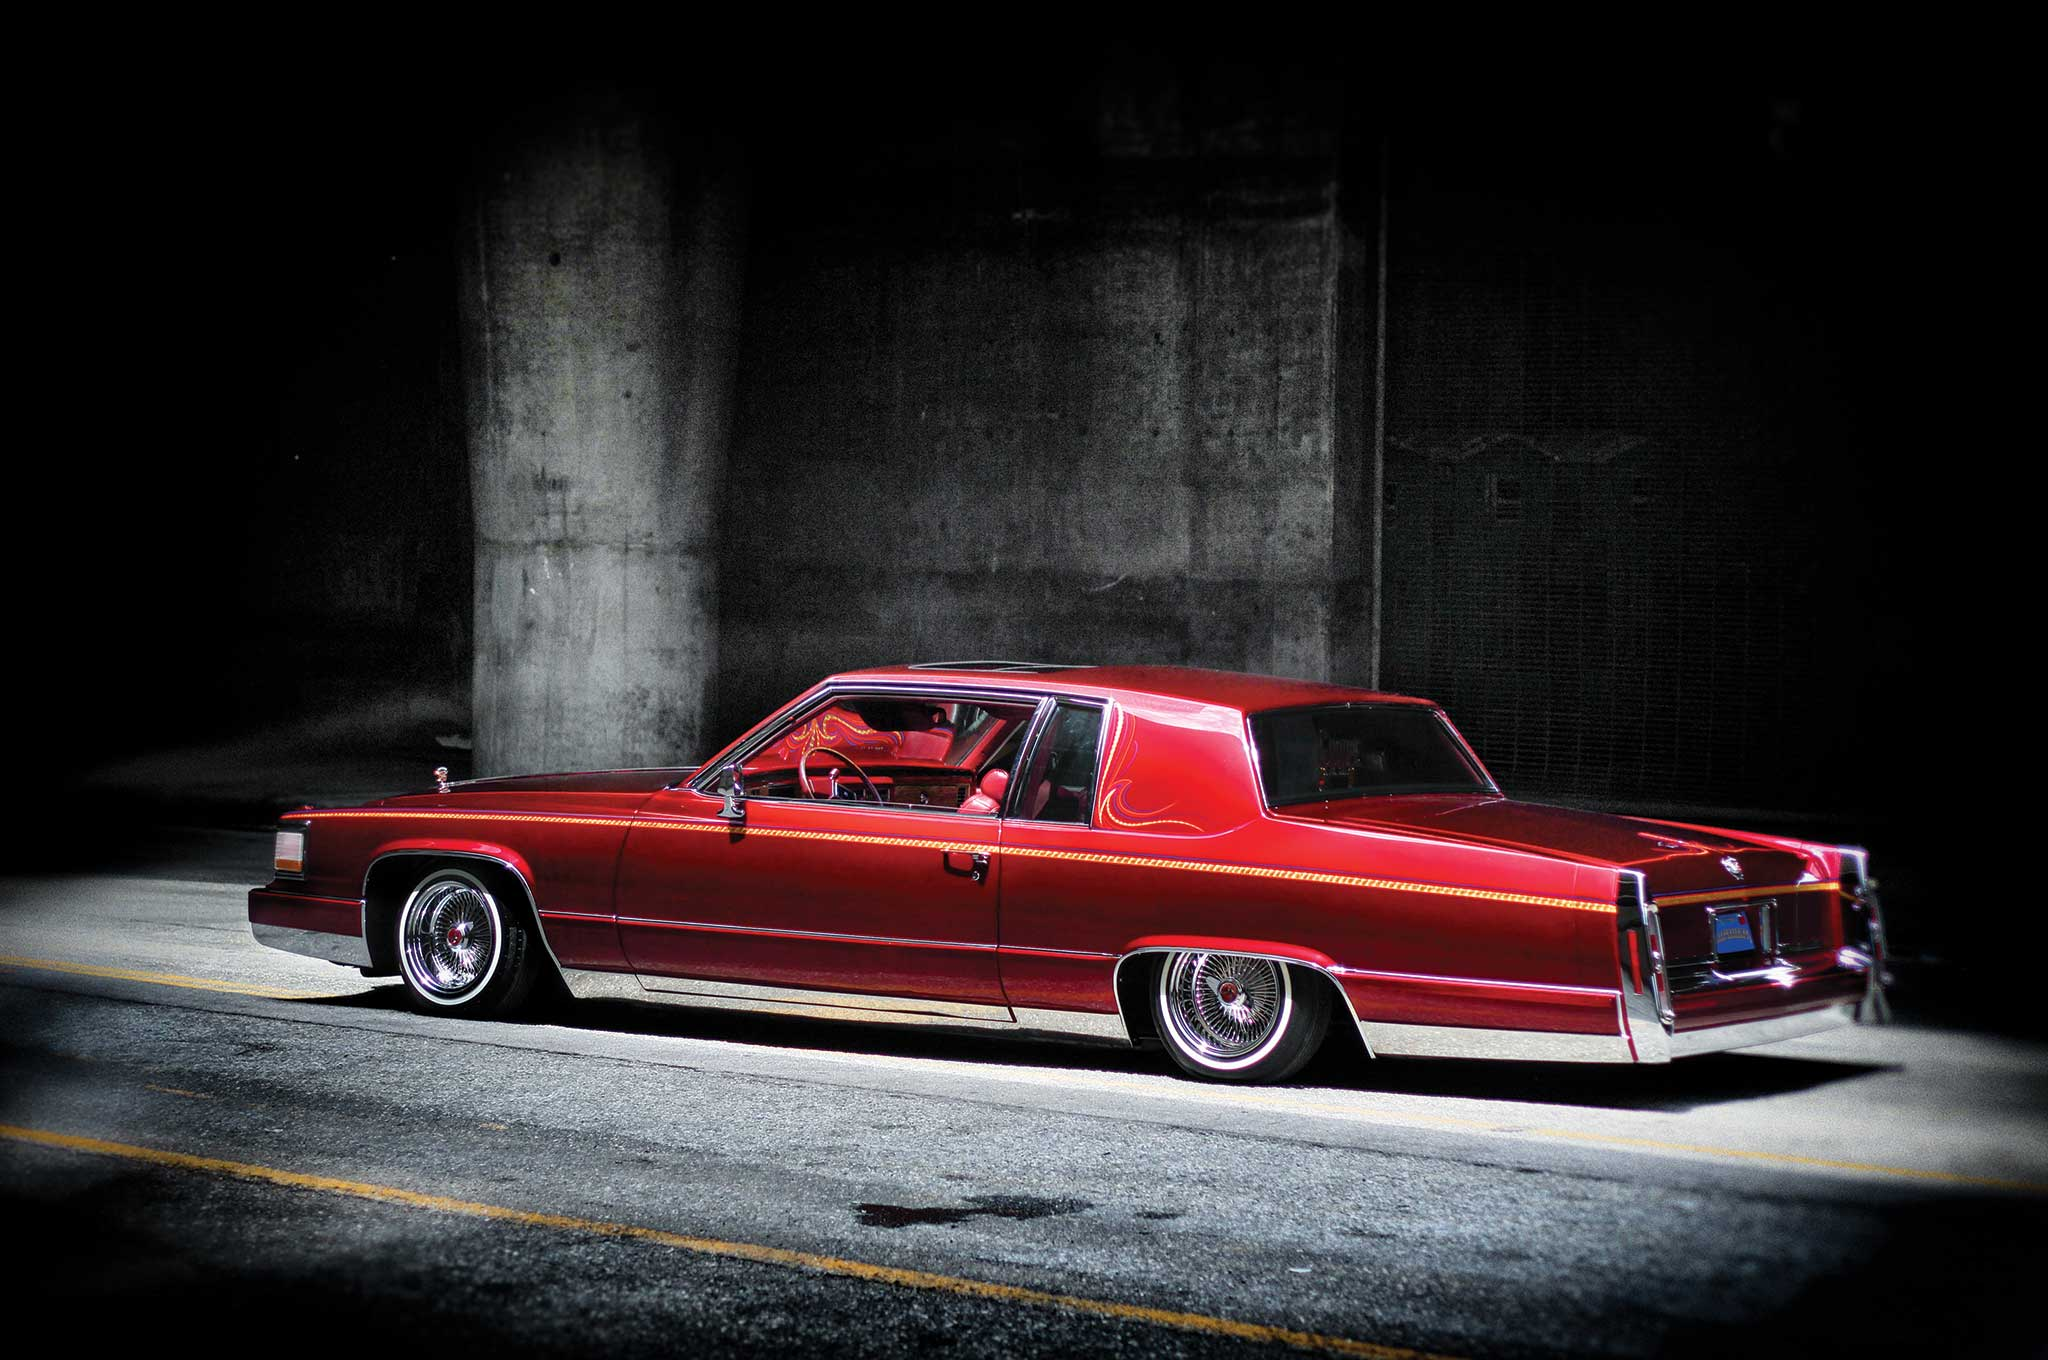 1983 cadillac coupe deville love her madly lowrider. Black Bedroom Furniture Sets. Home Design Ideas